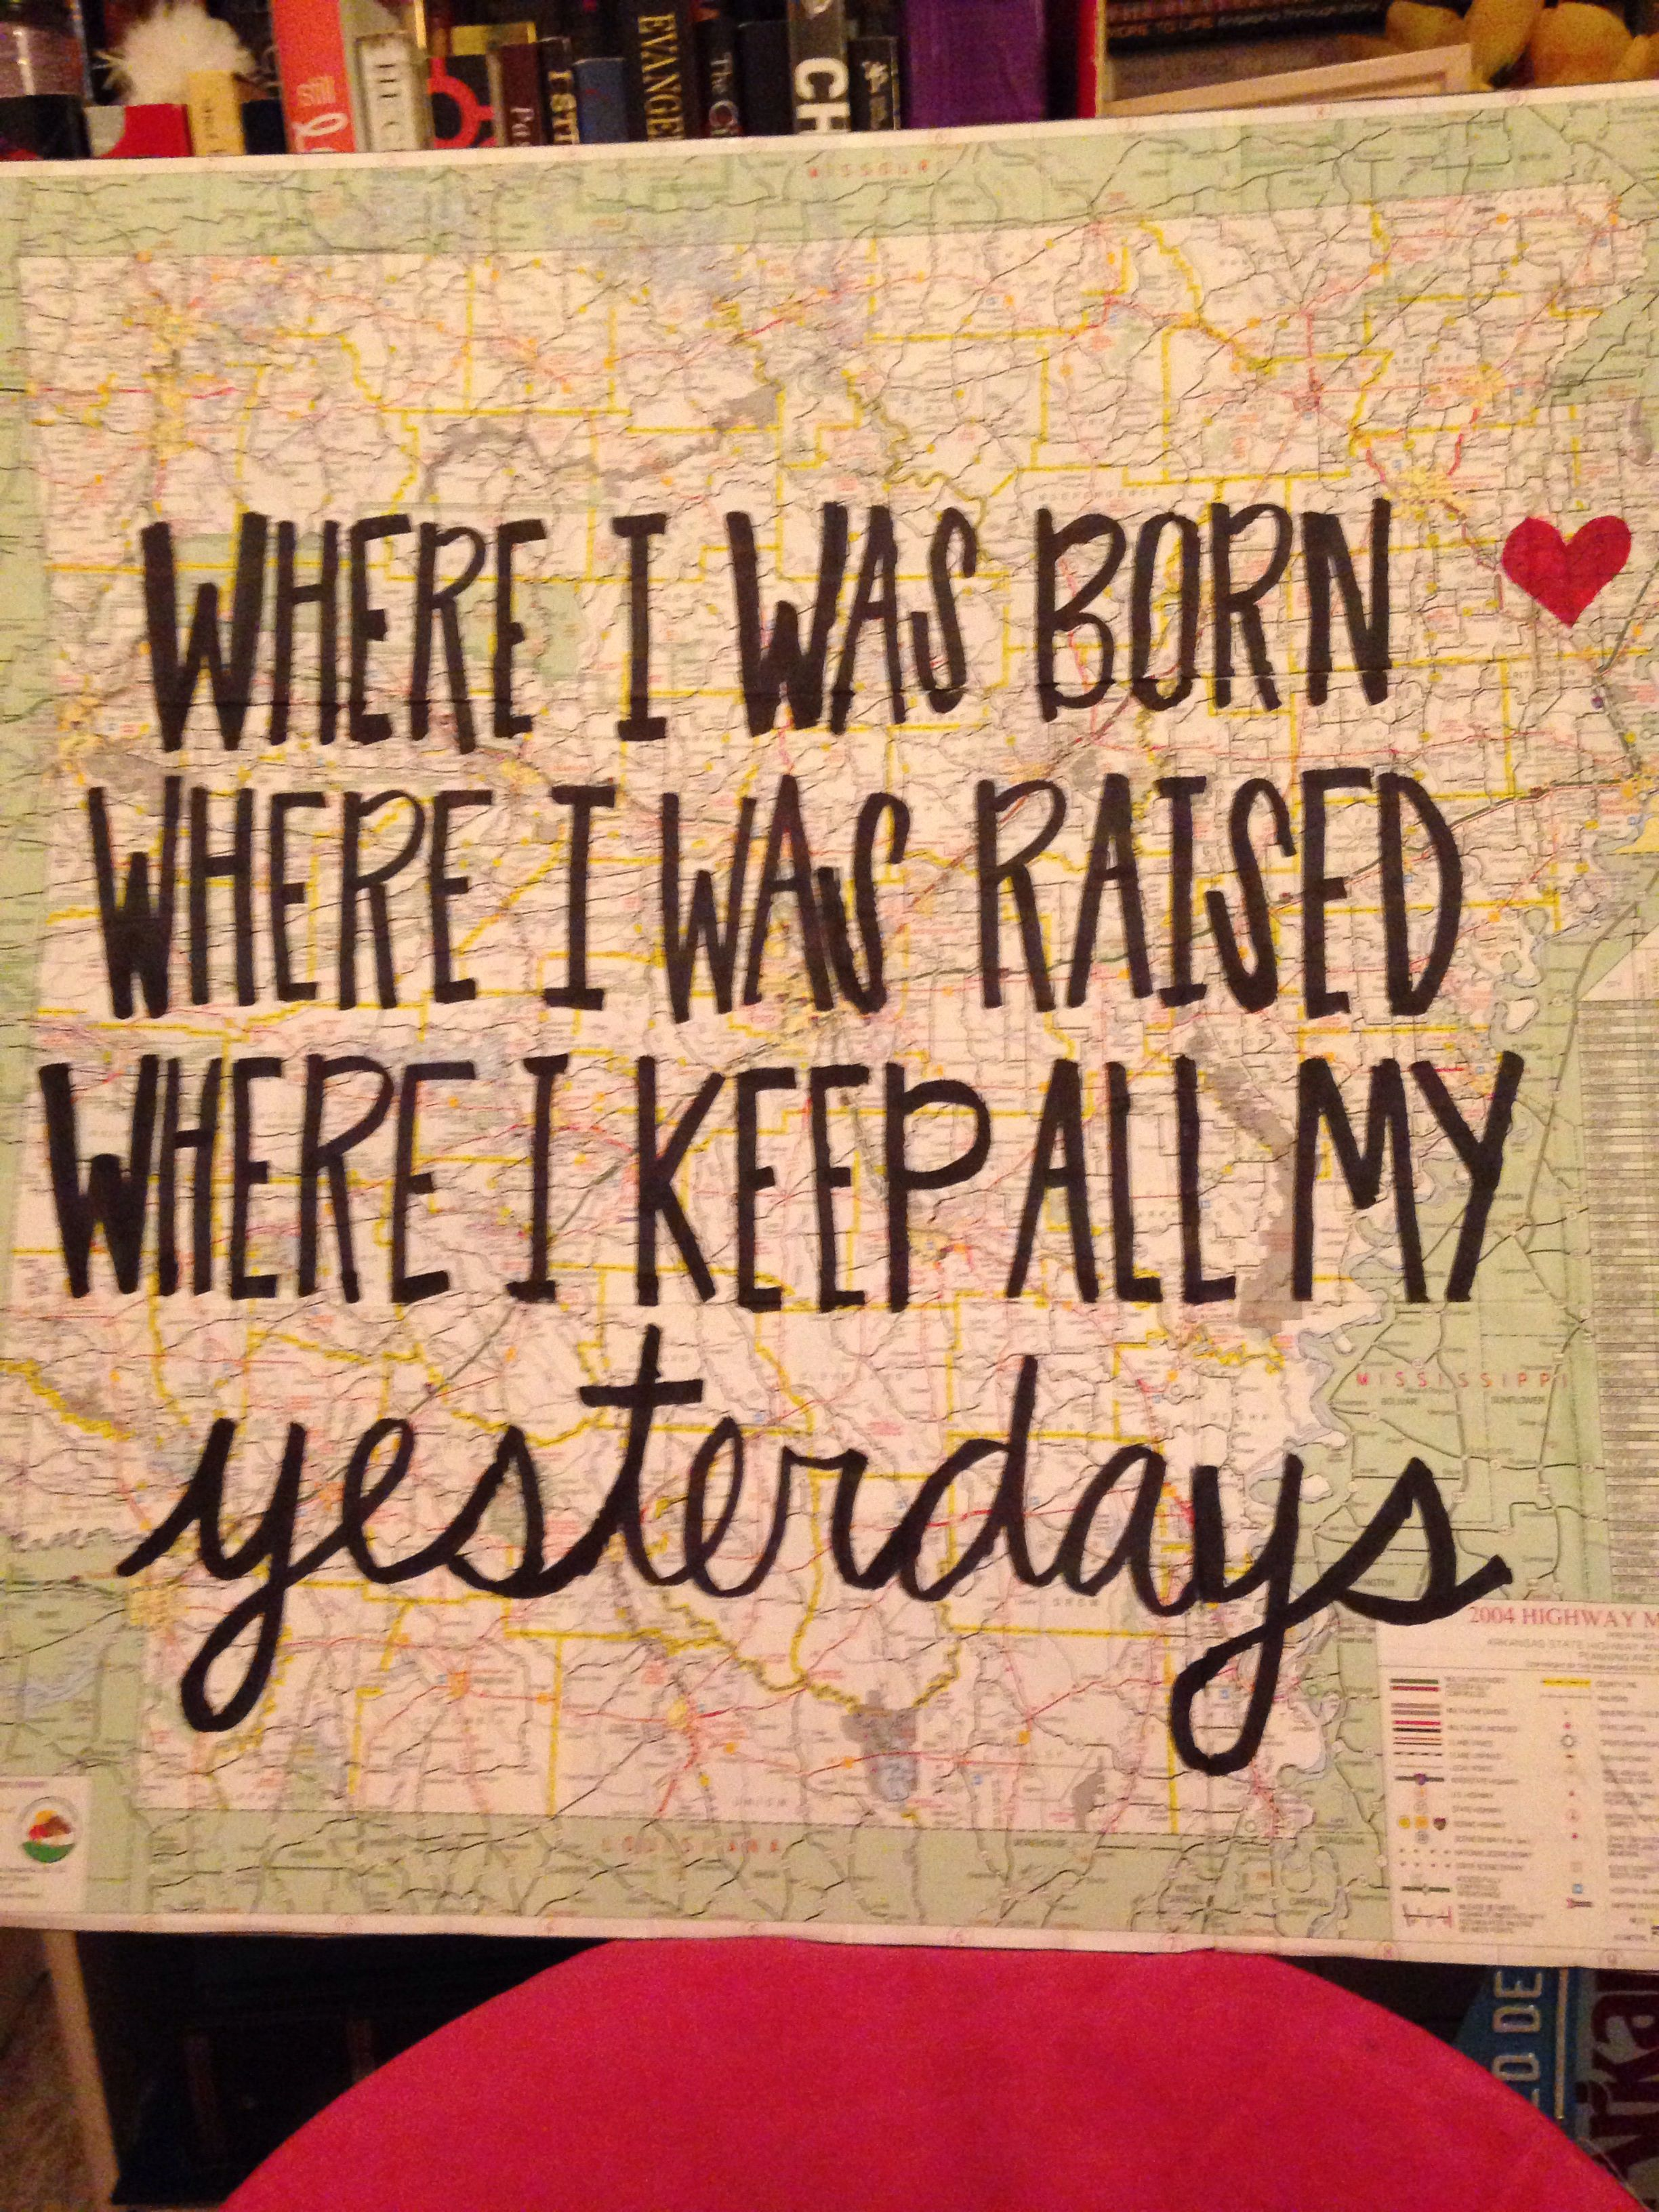 Great Music Quote And A Heart Over My Hometown And The Surrounding